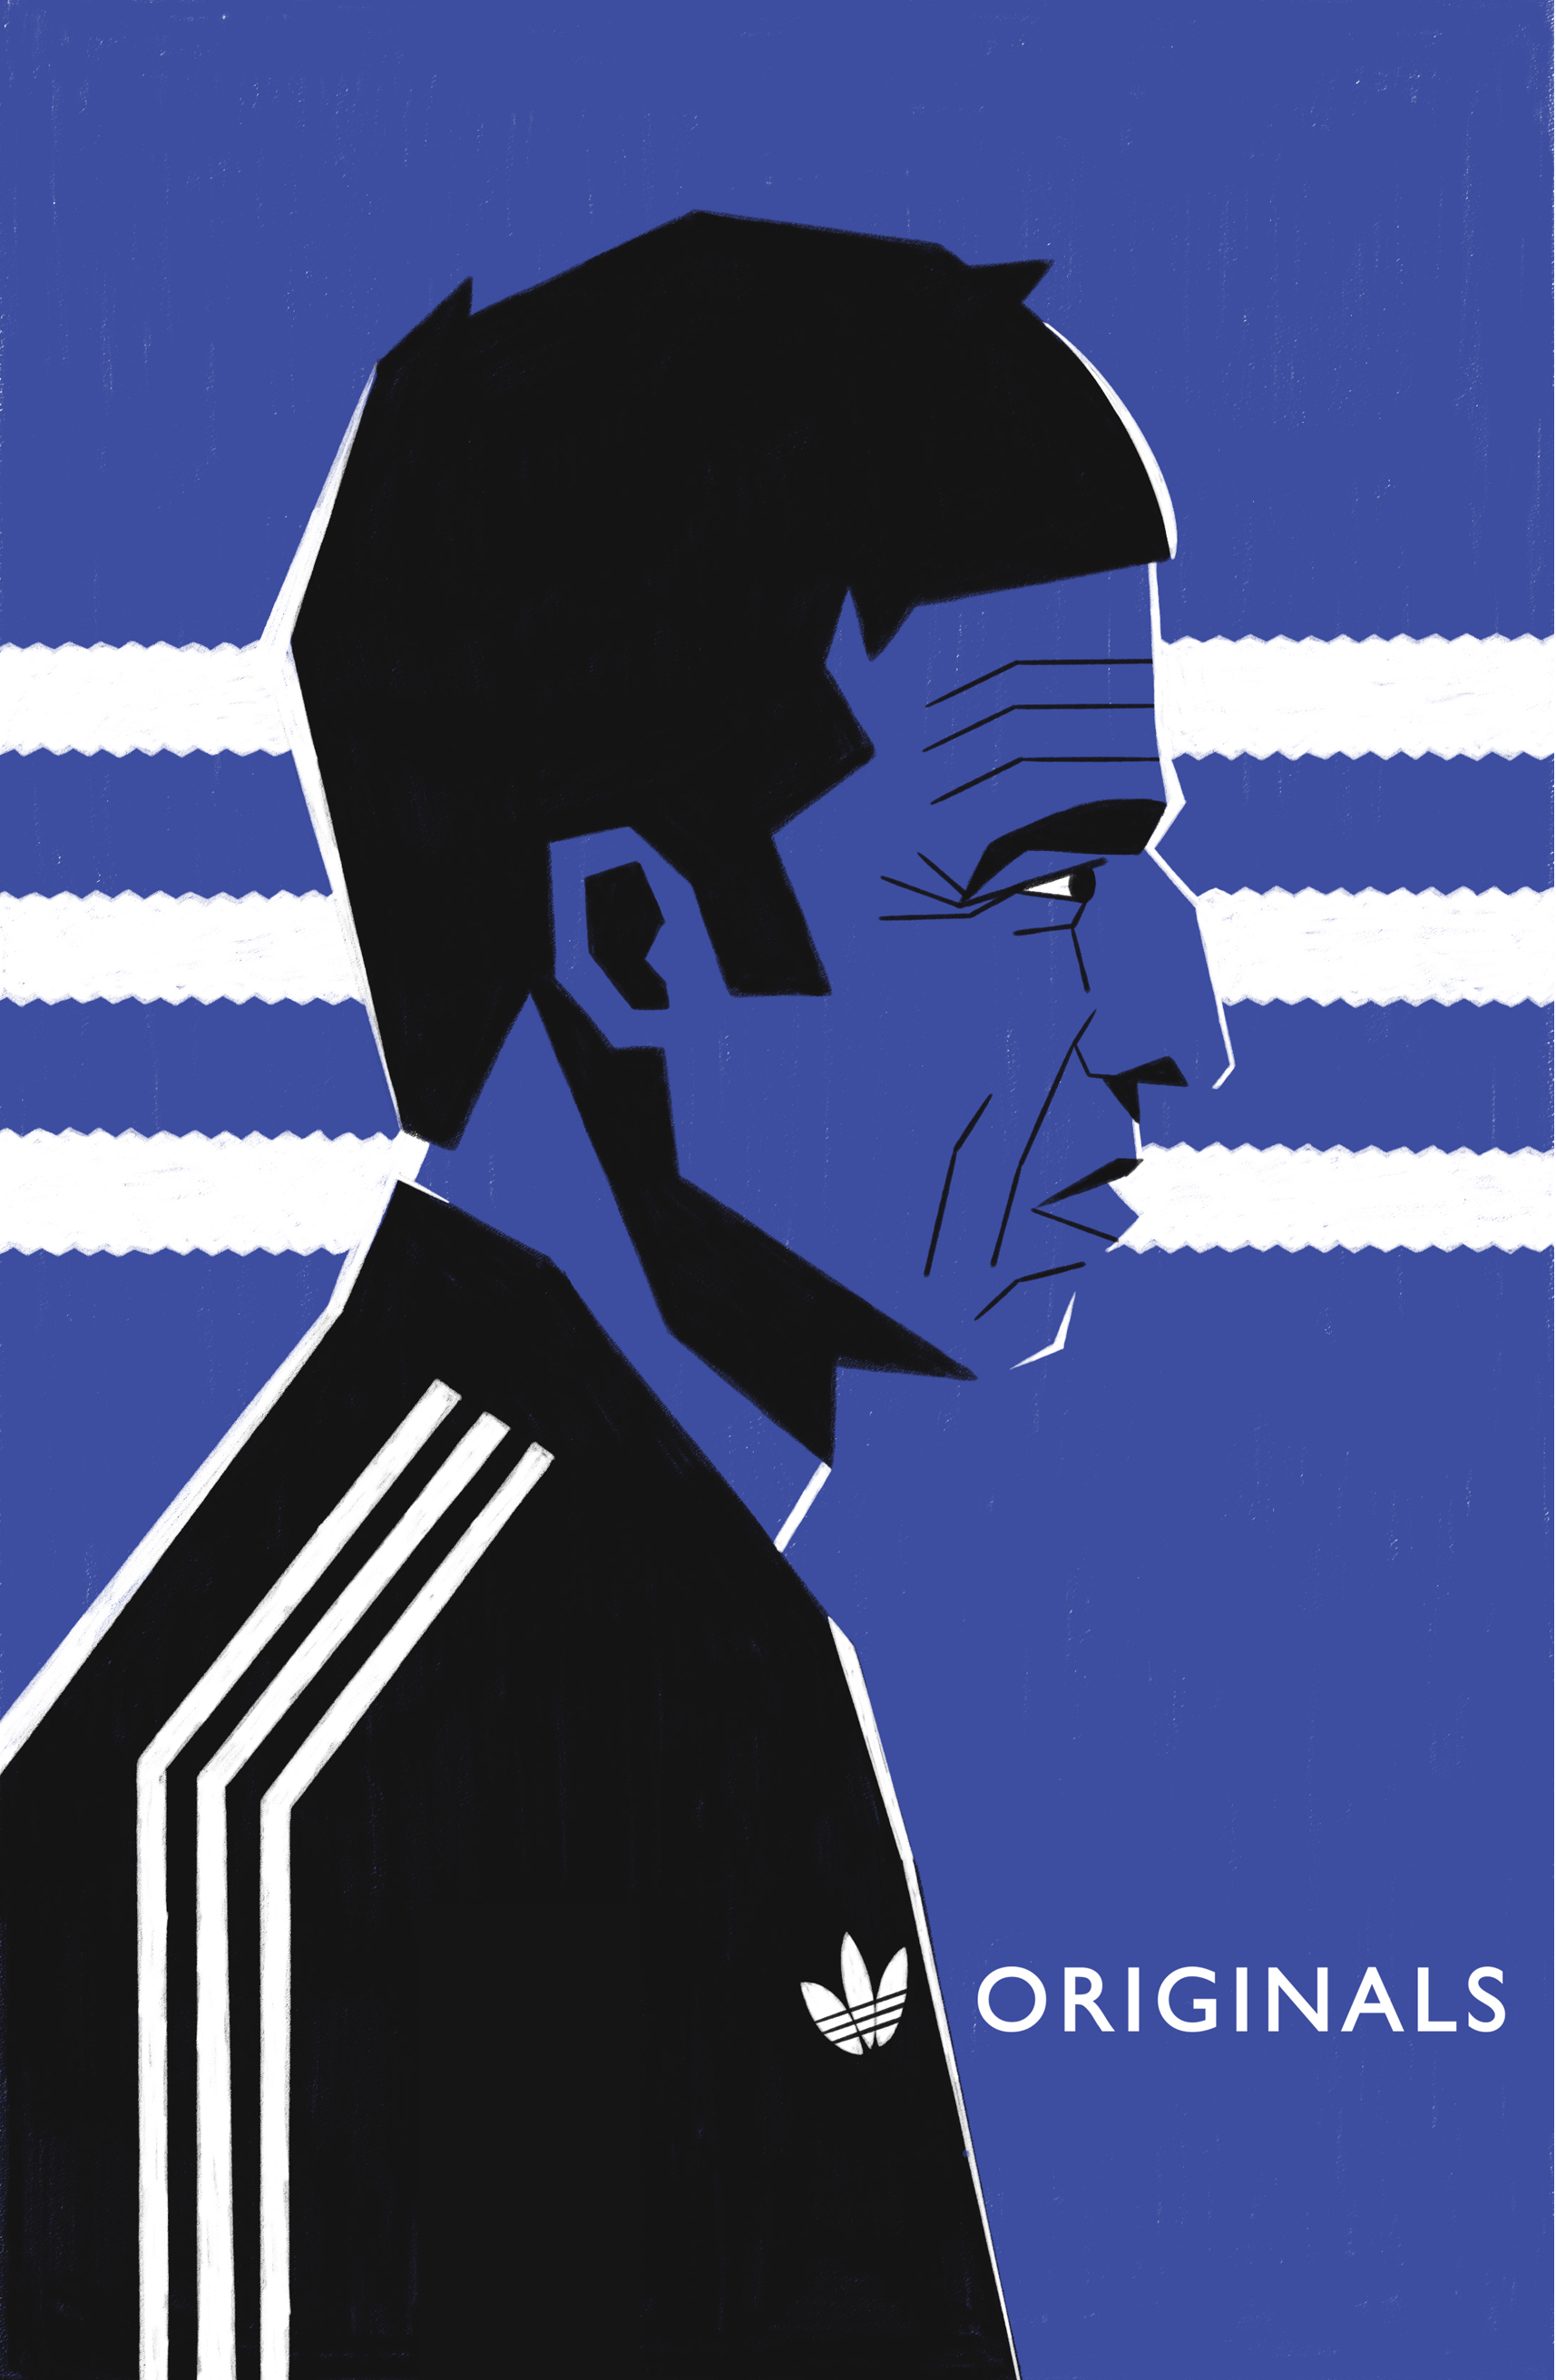 dale edwin murray freelance illustrator personal adidas portrait music poster illustration